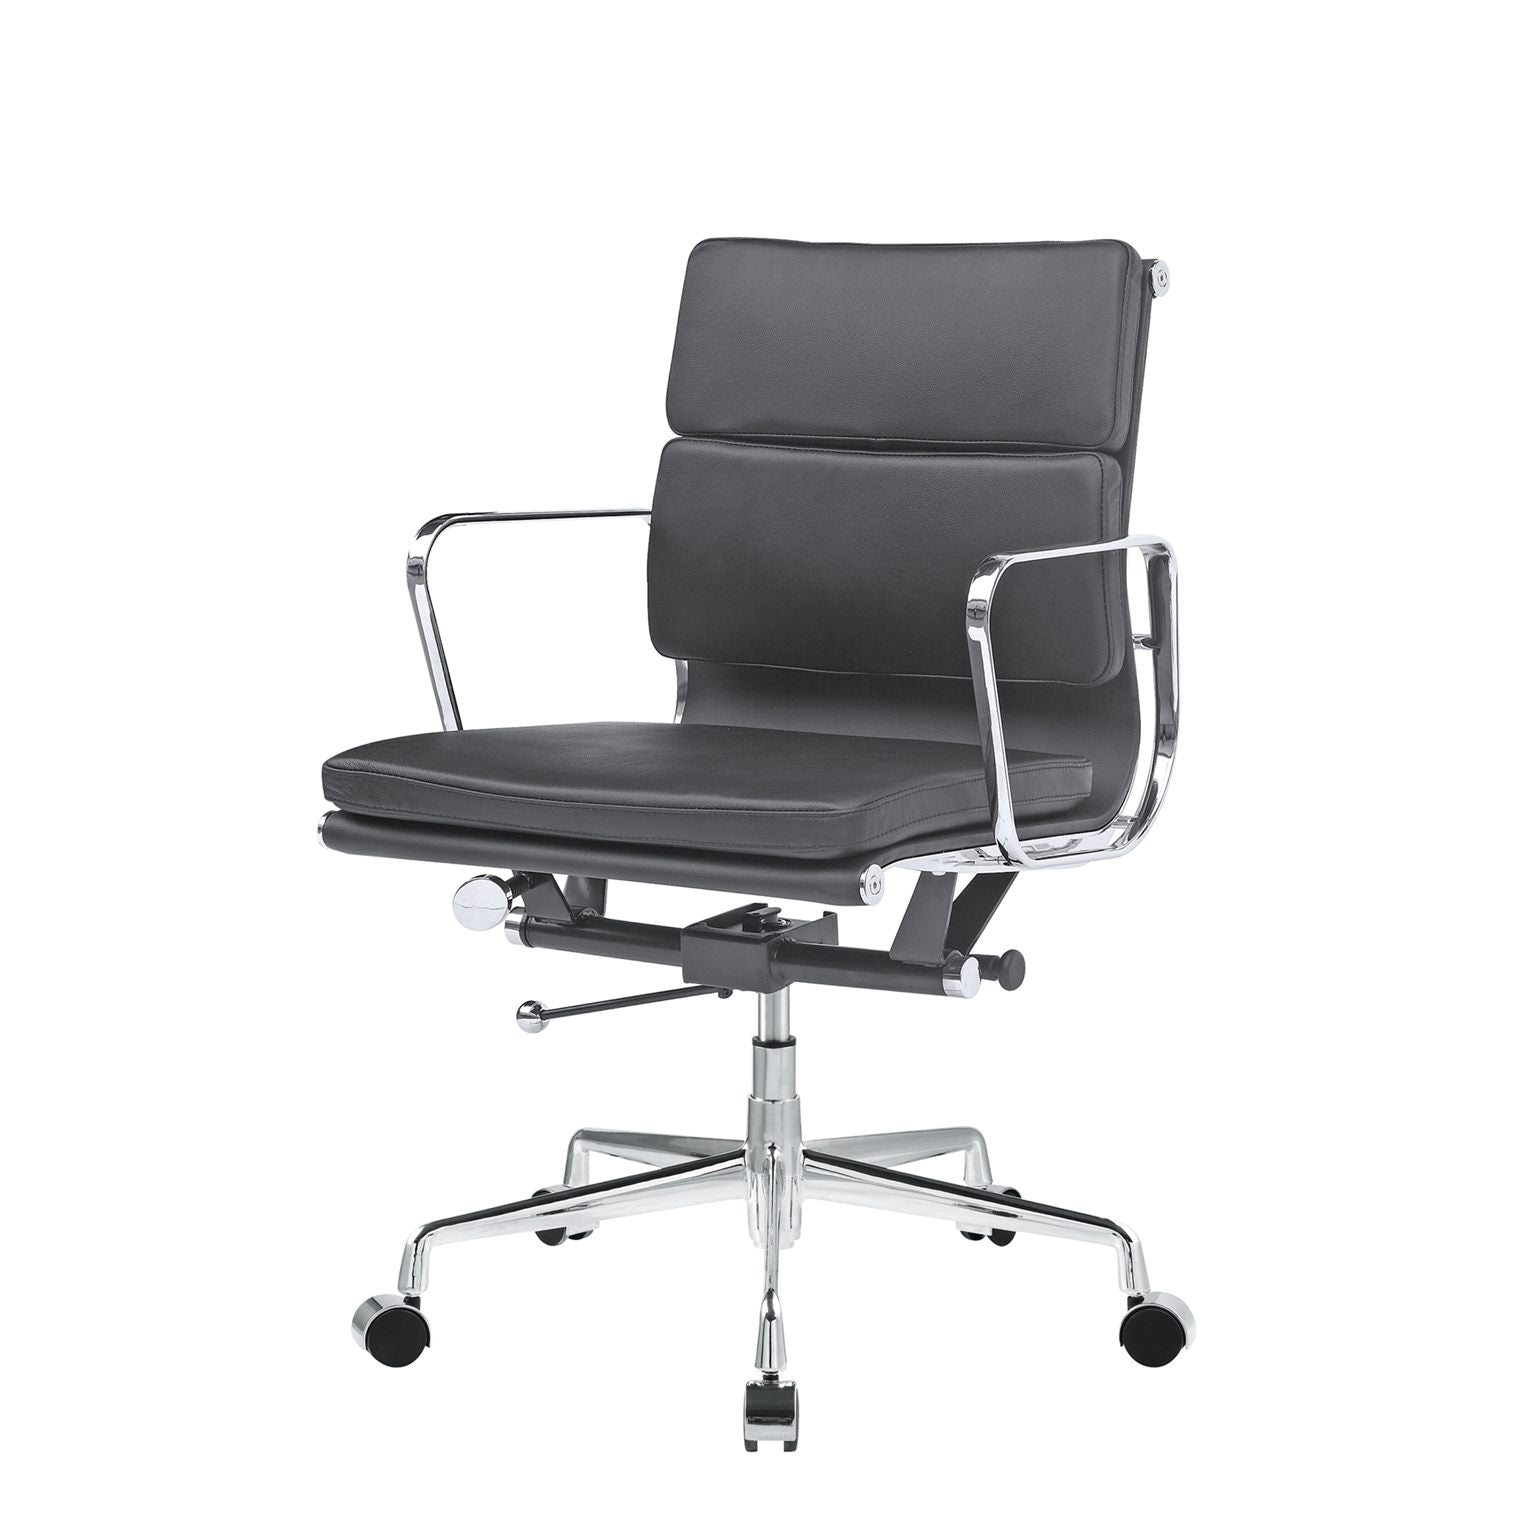 *MG* Replica Soft Pad Genuine Leather Office Chair low Back, *Special* in stock